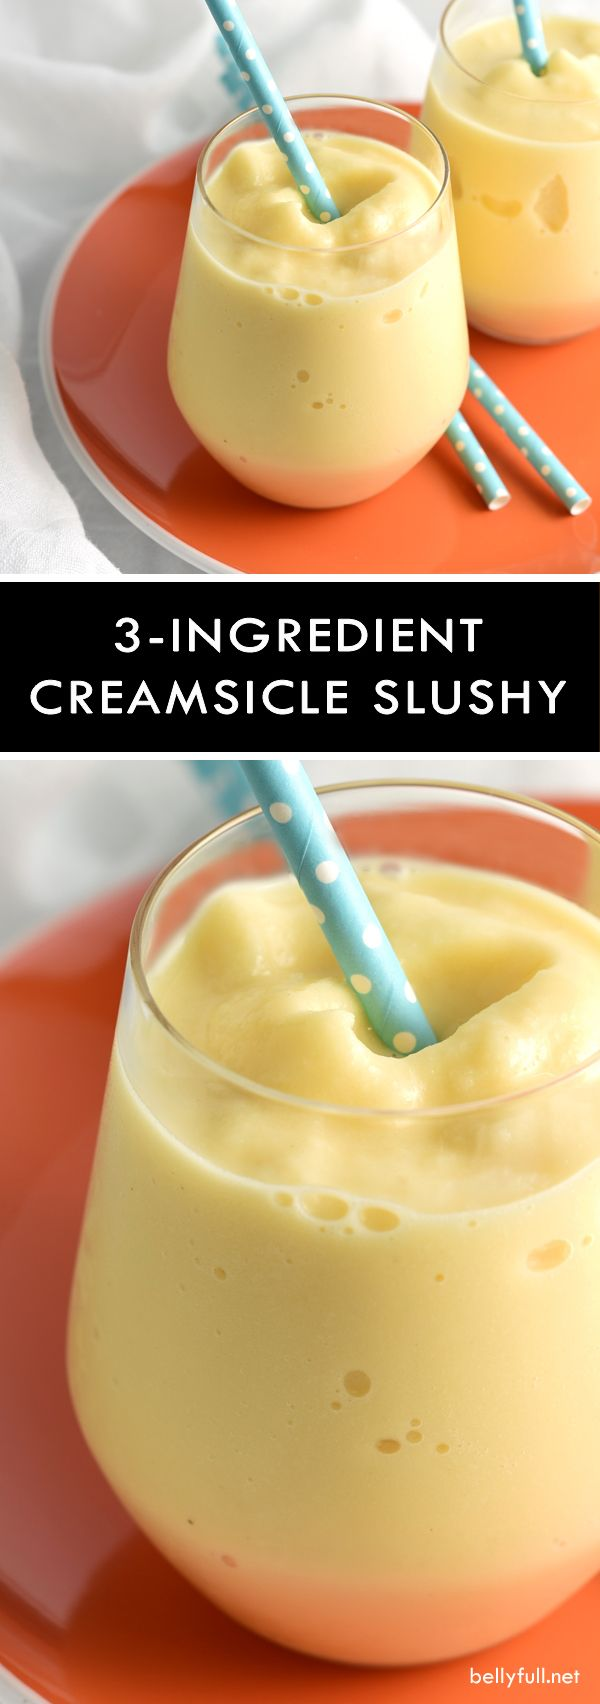 This creamsicle slushy is a healthier version of the popular summer popsicle but just as delicious and refreshing!